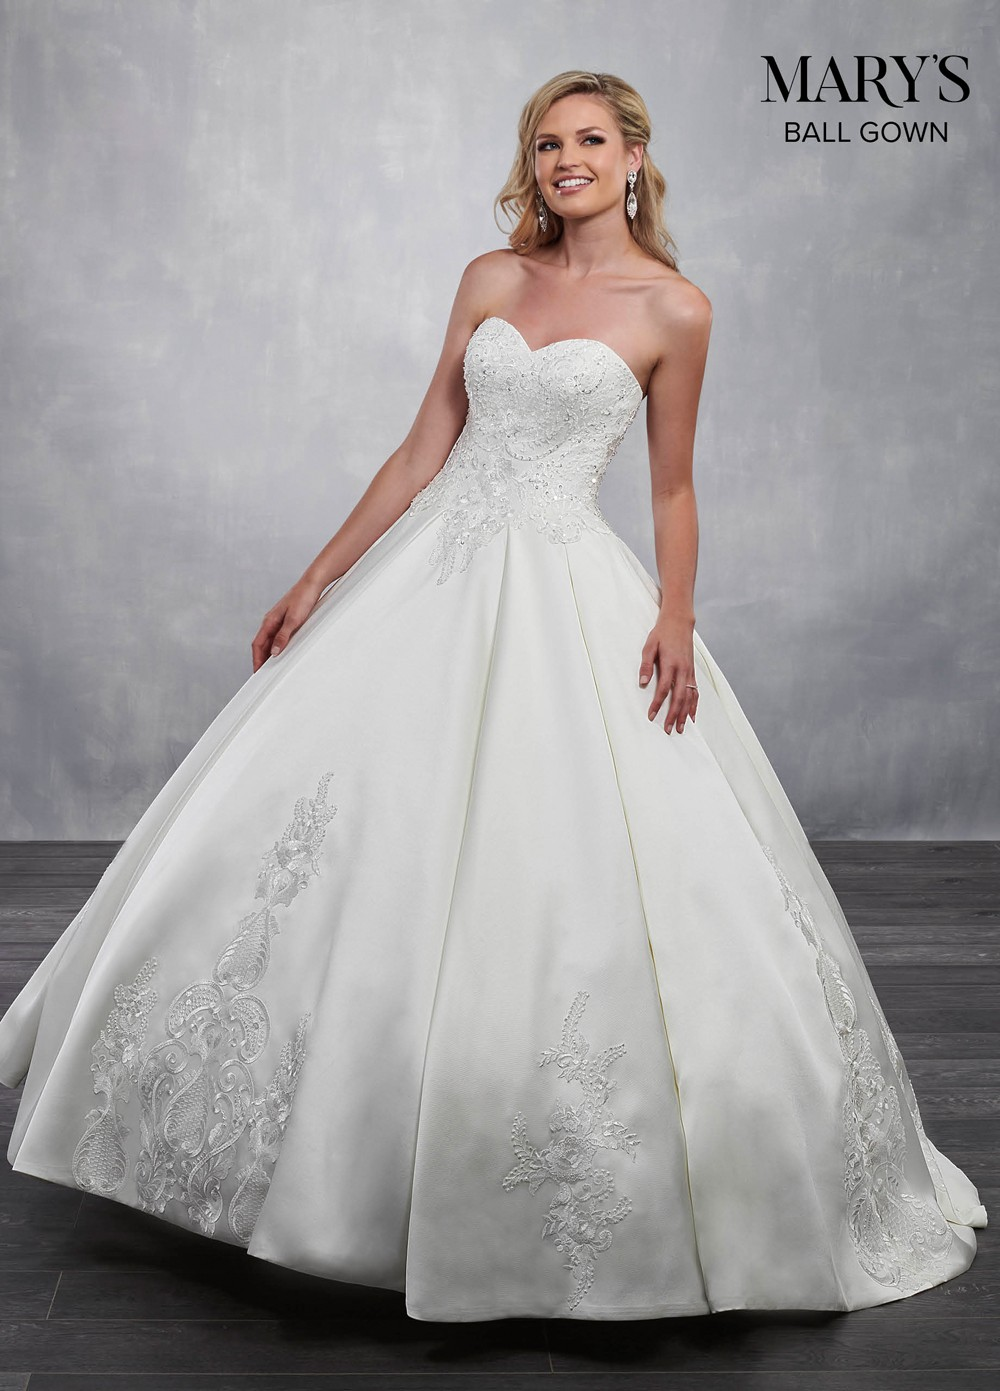 df2210f8412c Beaded Lace Wedding Dress With Pleated Skirt Oleg Cassini Cwg780 ...